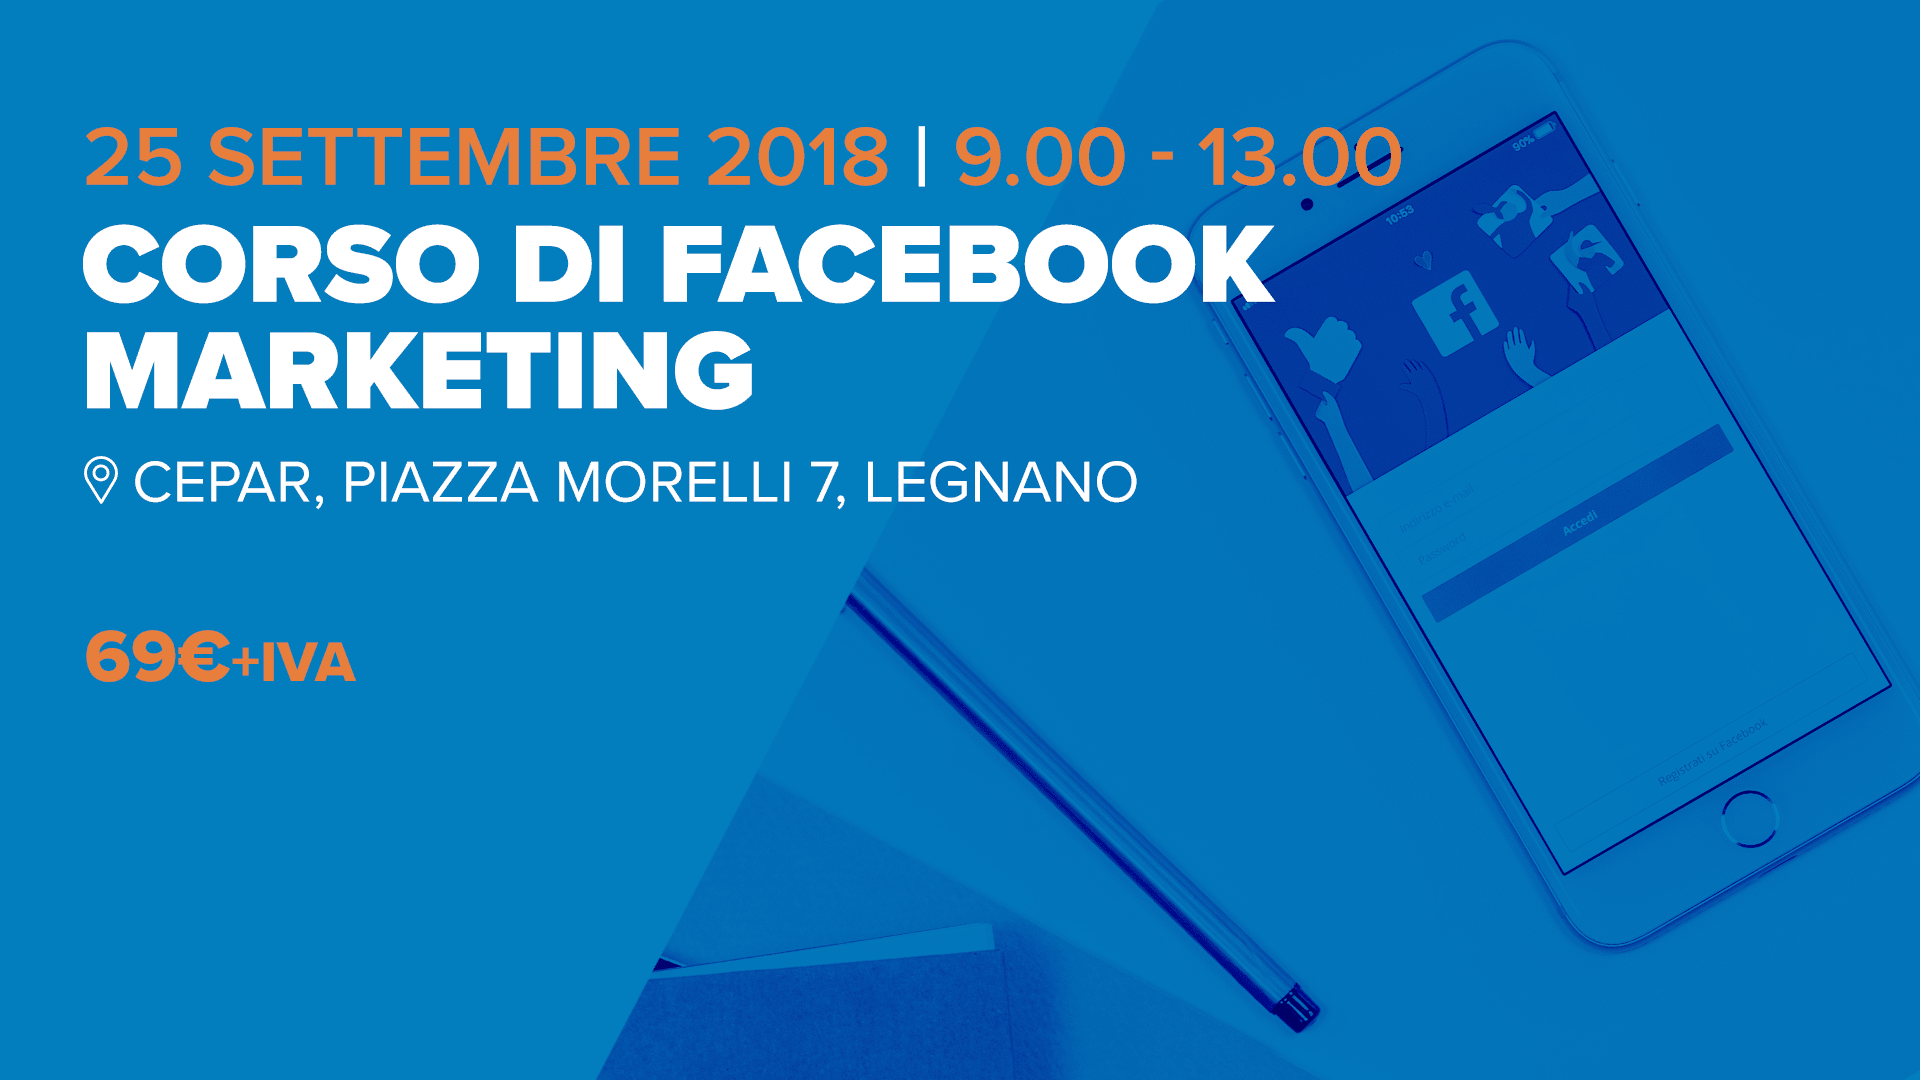 Corso di Facebook Marketing